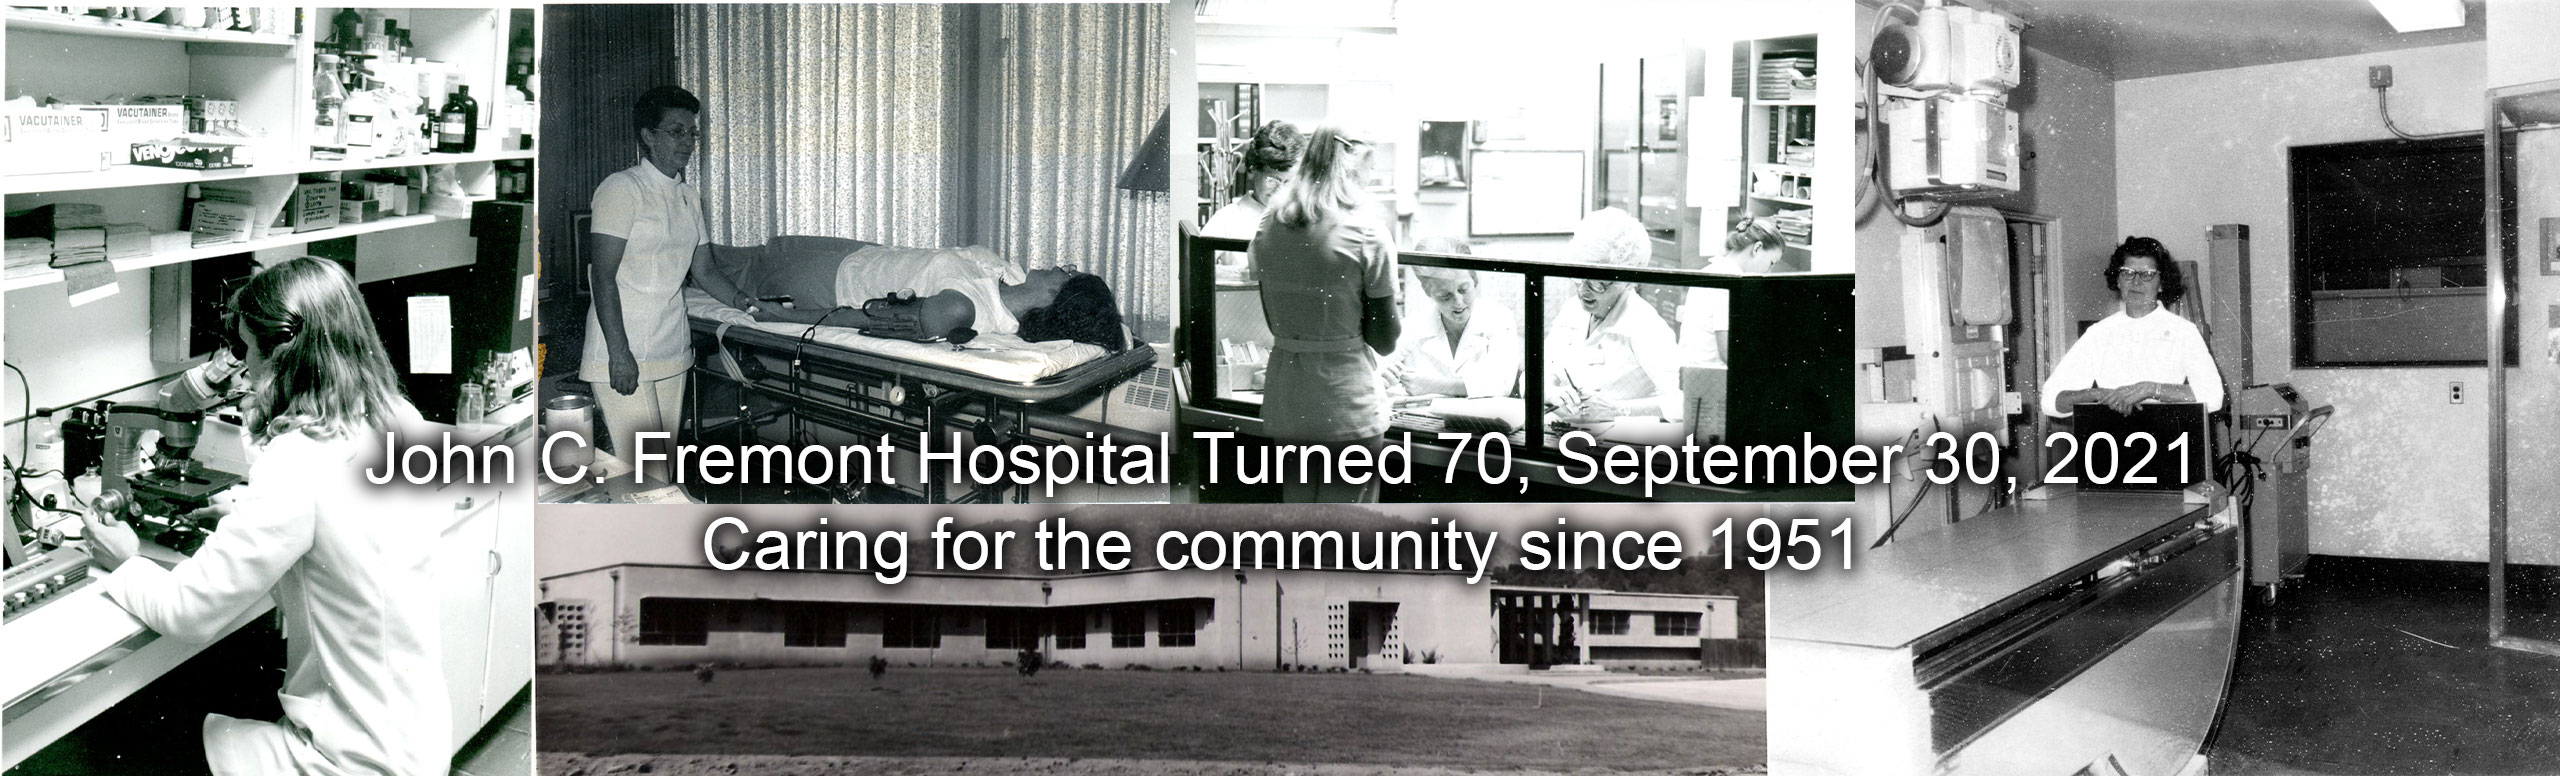 Banner picture of vintage photo's of Hospital workers (all females) and the old hospital building.  Banner says:  John C. Fremont Hosptial Turns 70, September 30, 2021 Caring for the community since 1951